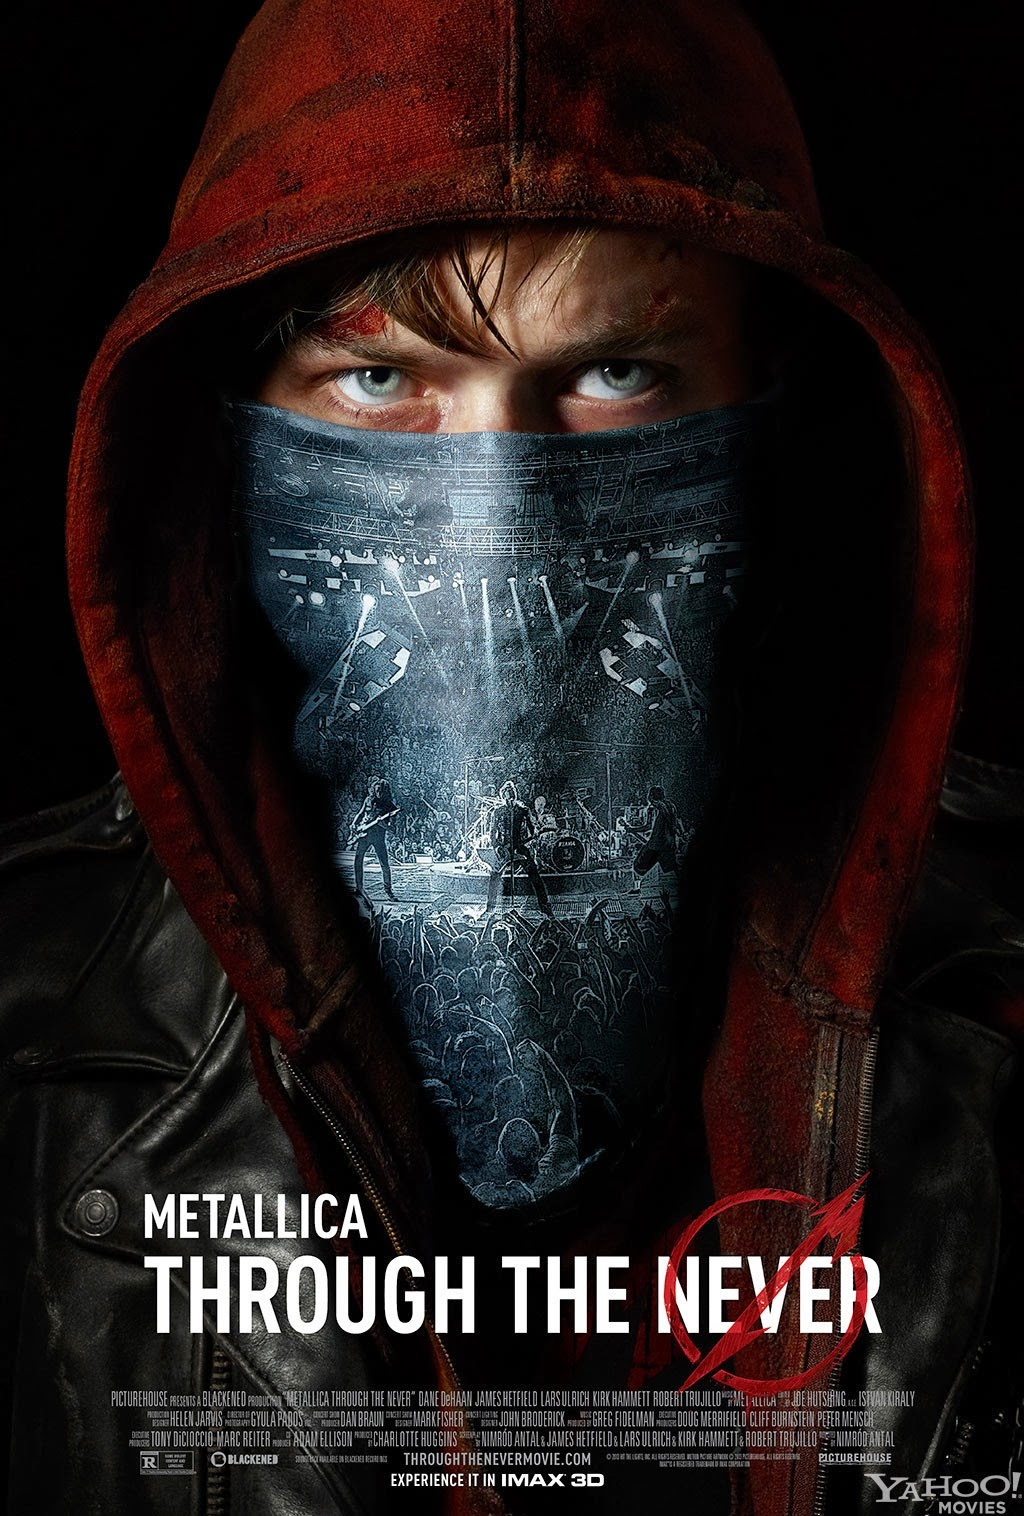 Assistir Online Metallica Through the Never Dublado Filme Link Direto Torrent